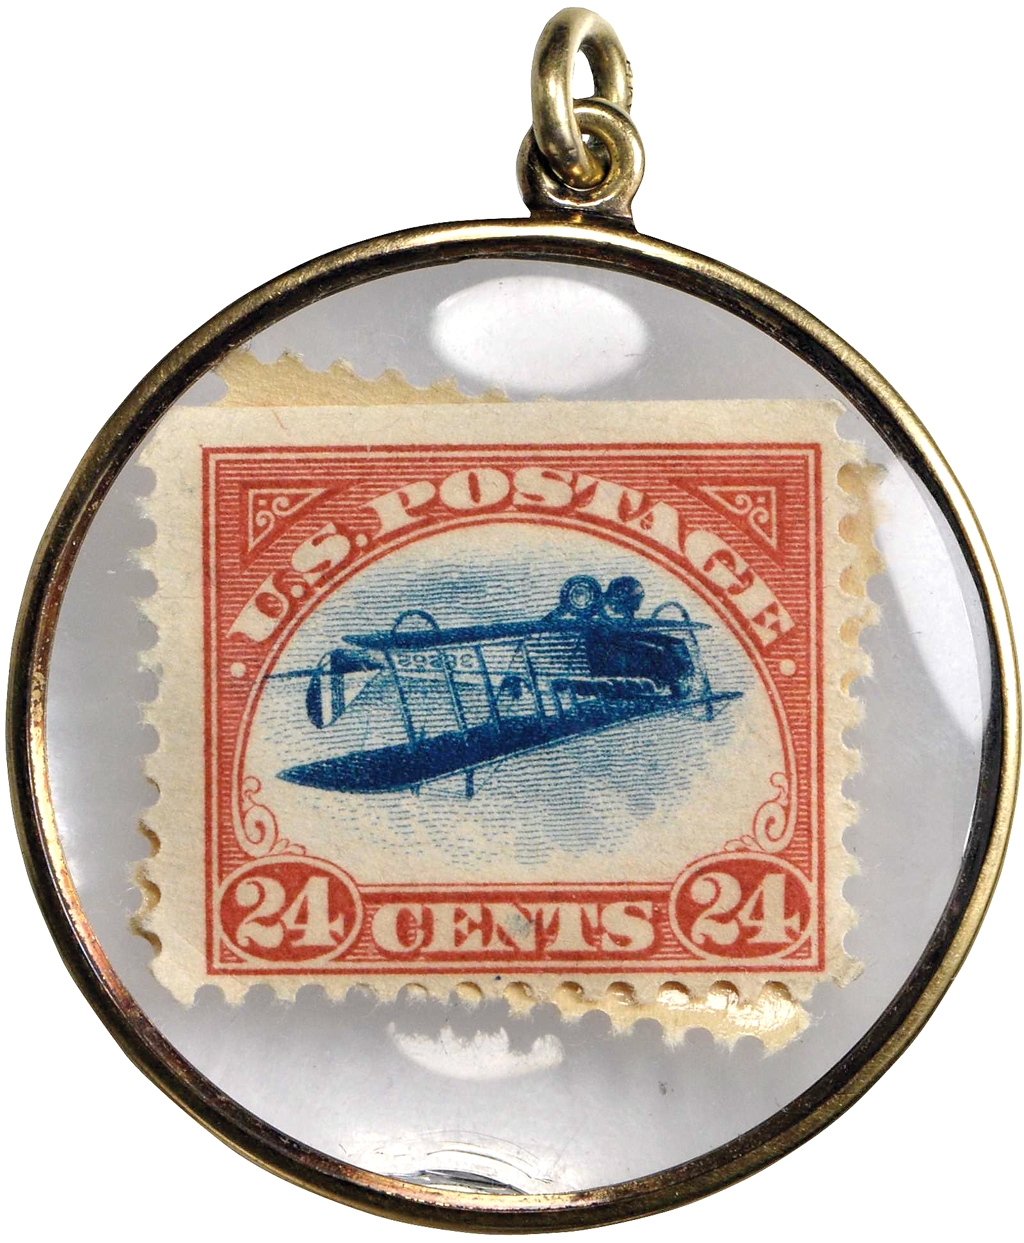 Jenny Invert Locket Copy Sells Paul Newman Stamp Announced Weeks Most Read